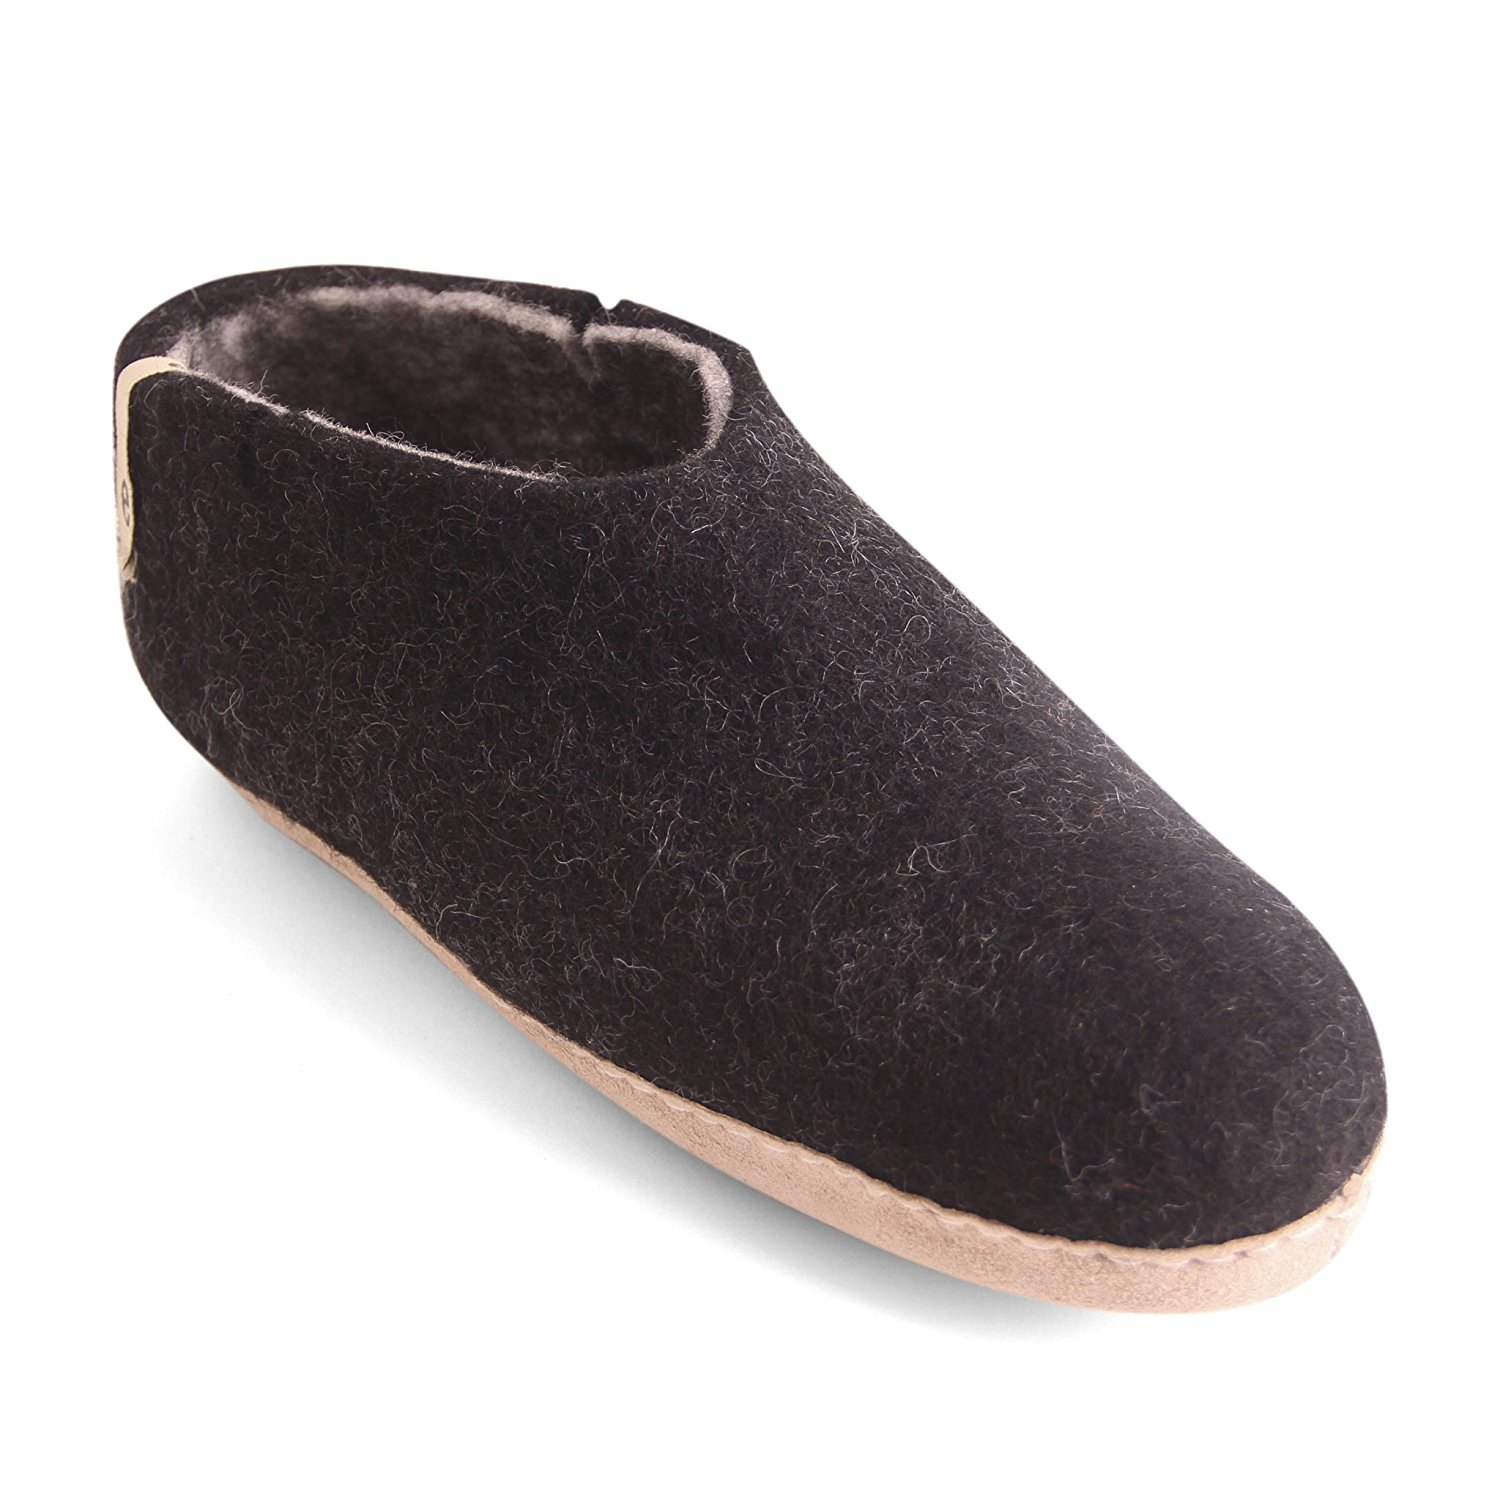 Egos House Slippers: 100% Natural Sheep Wool Handmade Slippers| Warm, Ultra Comfortable & Moisture-Wicking| Deluxe Shoe Classic Slippers with Anti-Skid Leather Sole| Bedroom Slippers for Men, Women &